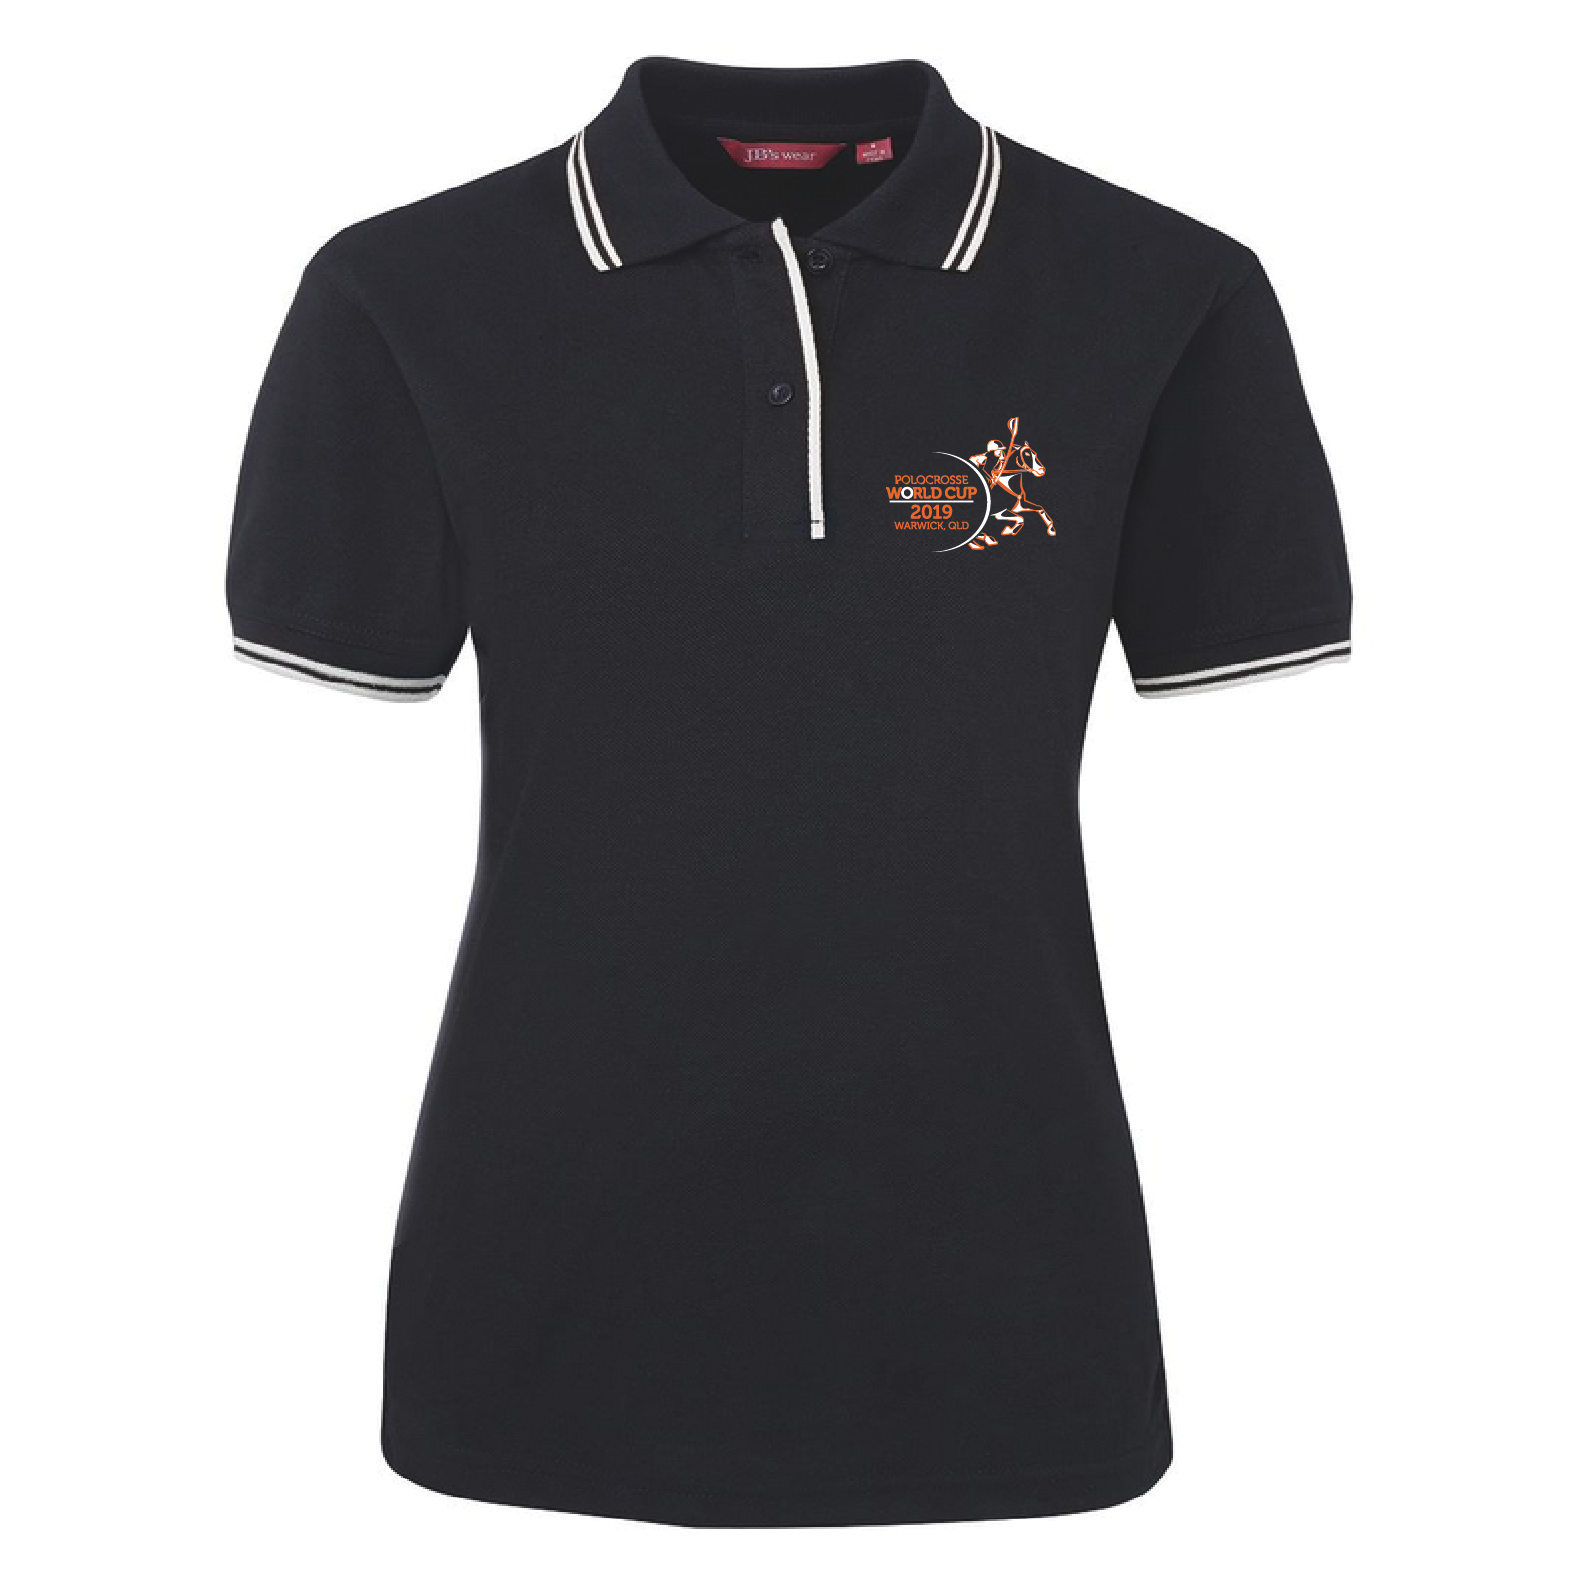 JB LADIES POLOS - NAVYWHITE -1.png